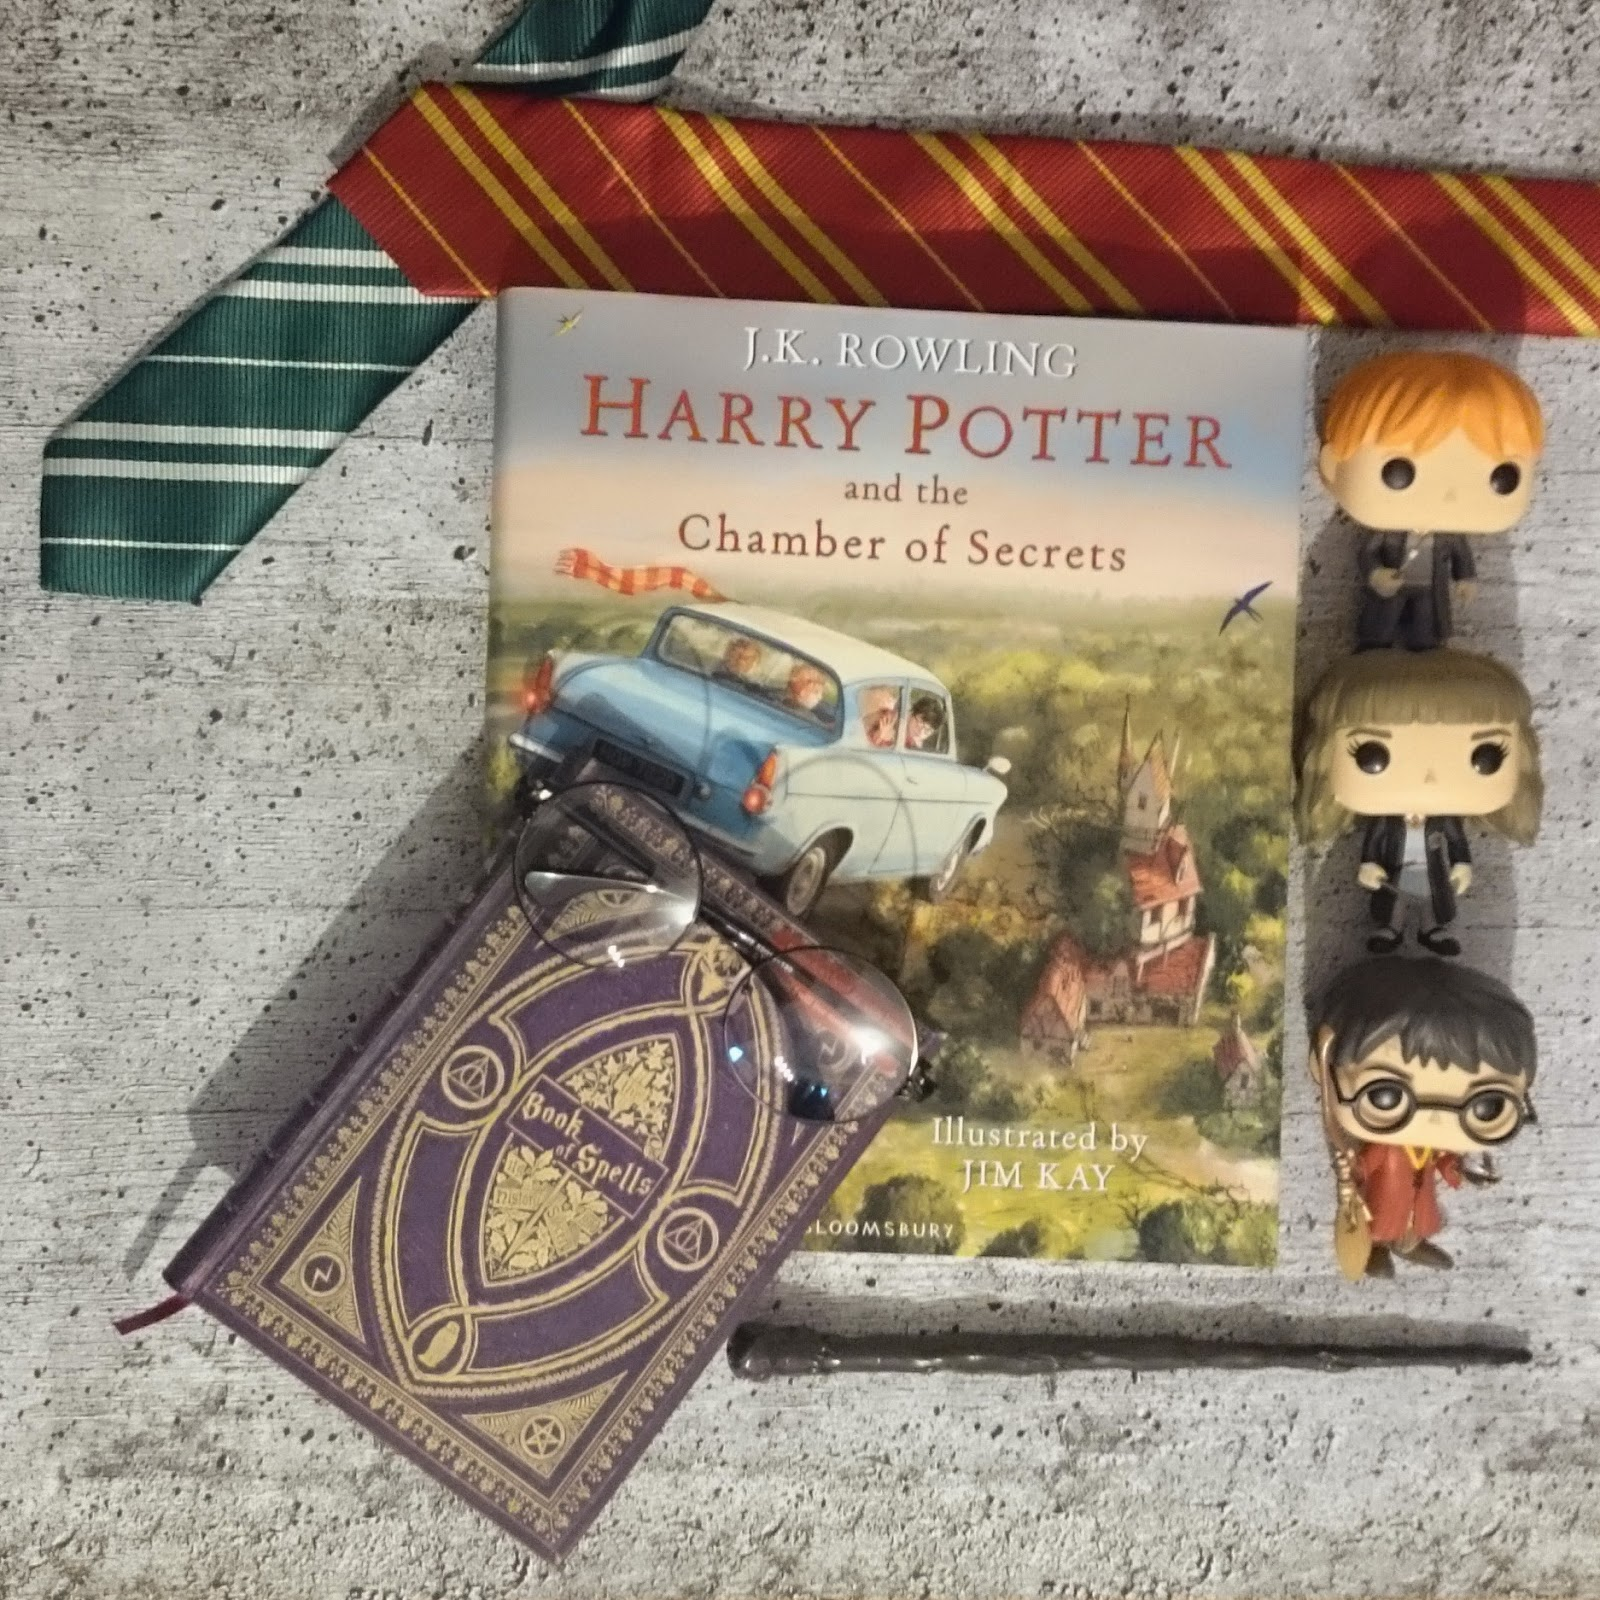 a review of jk rowlings harry potter and the chamber of secrets This series is in the times educational supplement teachers' top 100 books harry potter and the philosopher's stone 1997  harry potter and the chamber of secrets 1998  harry potter and the prisoner of azkaban 1999.